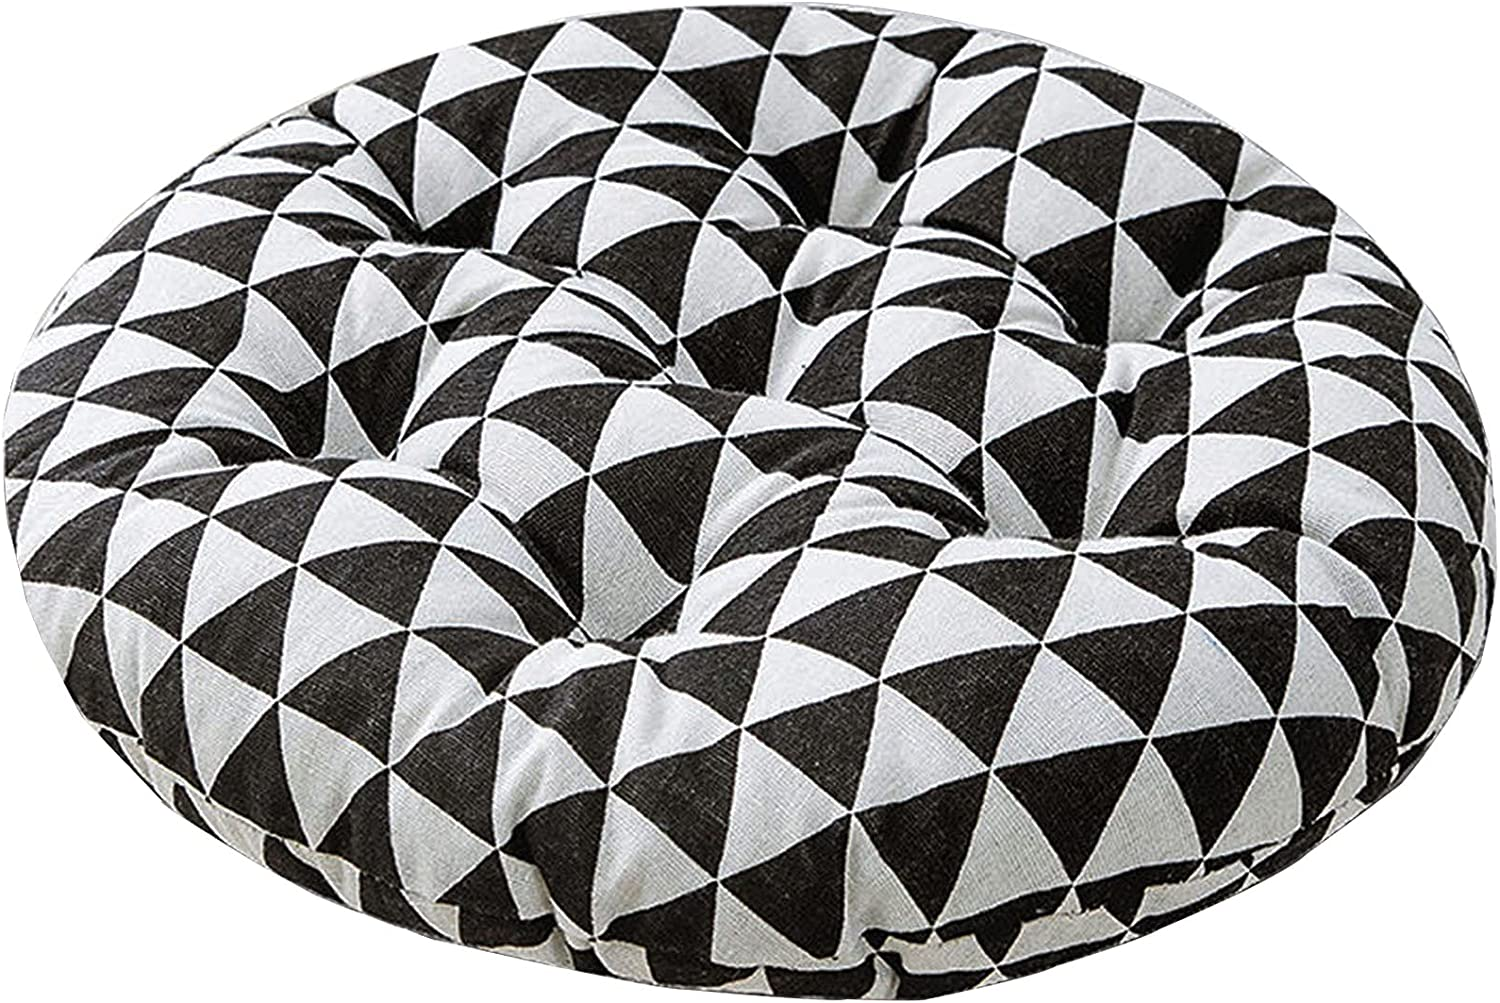 Manufacturer regenerated product MUCHO New mail order Round Chair Pads 22×22 inch Outdoor Indoor Decorative